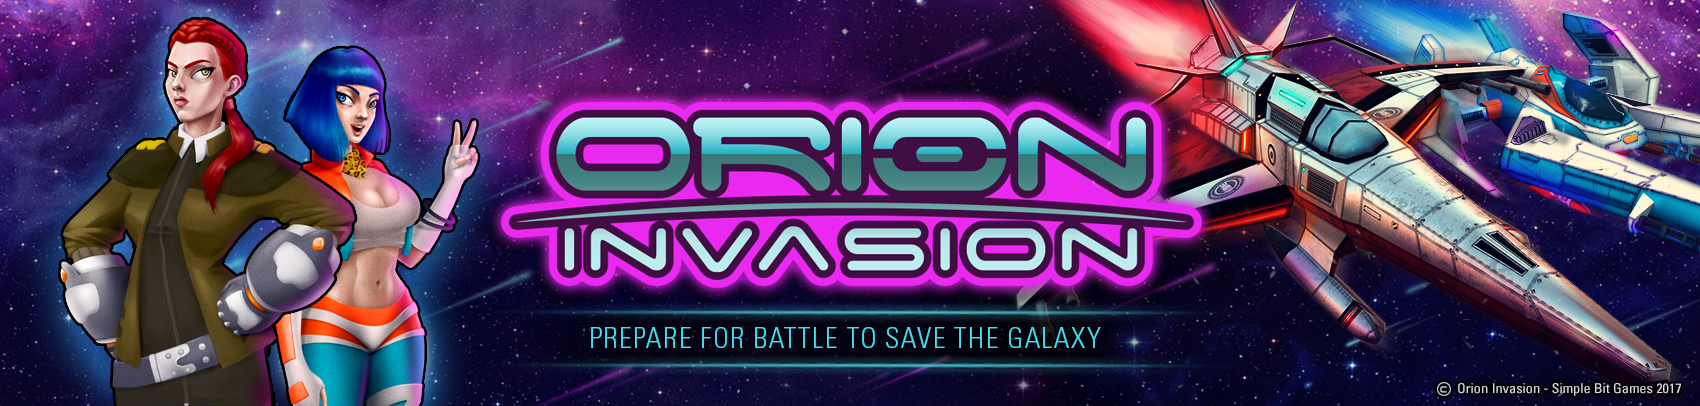 Orion Invasion